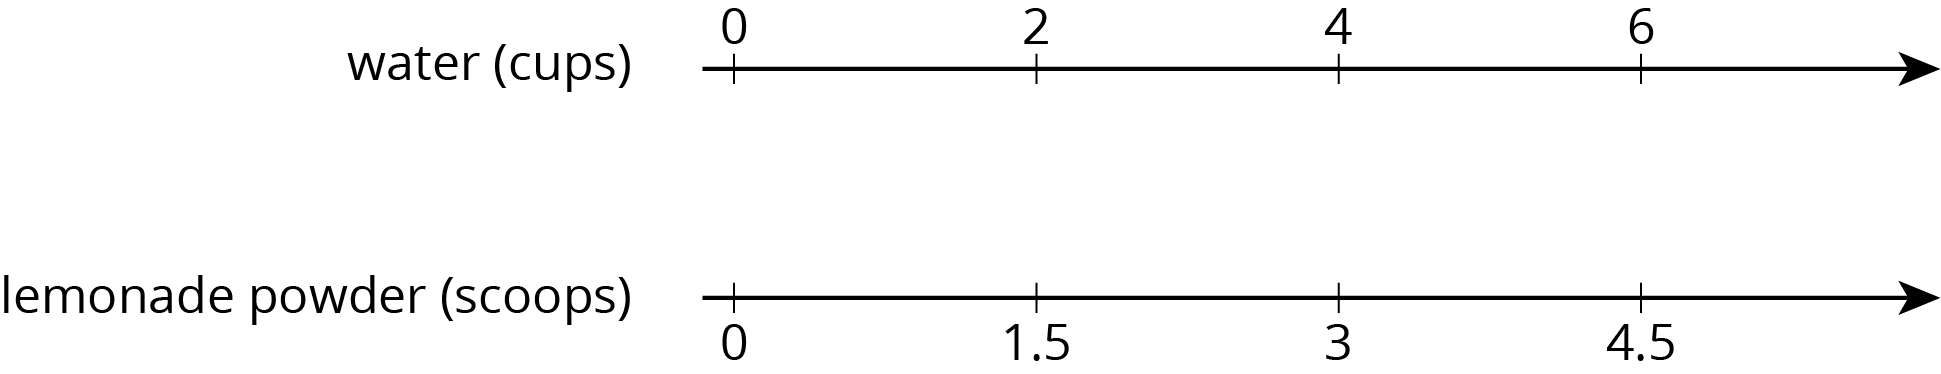 "A double number line with 4 evenly spaced tick marks. For ""water, in cups"" the numbers 0, 2, 4, and 6 are indicated. For ""lemonade powder, in scoops"" the numbers 0, 1.5, 3, and 4.5 are indicated."